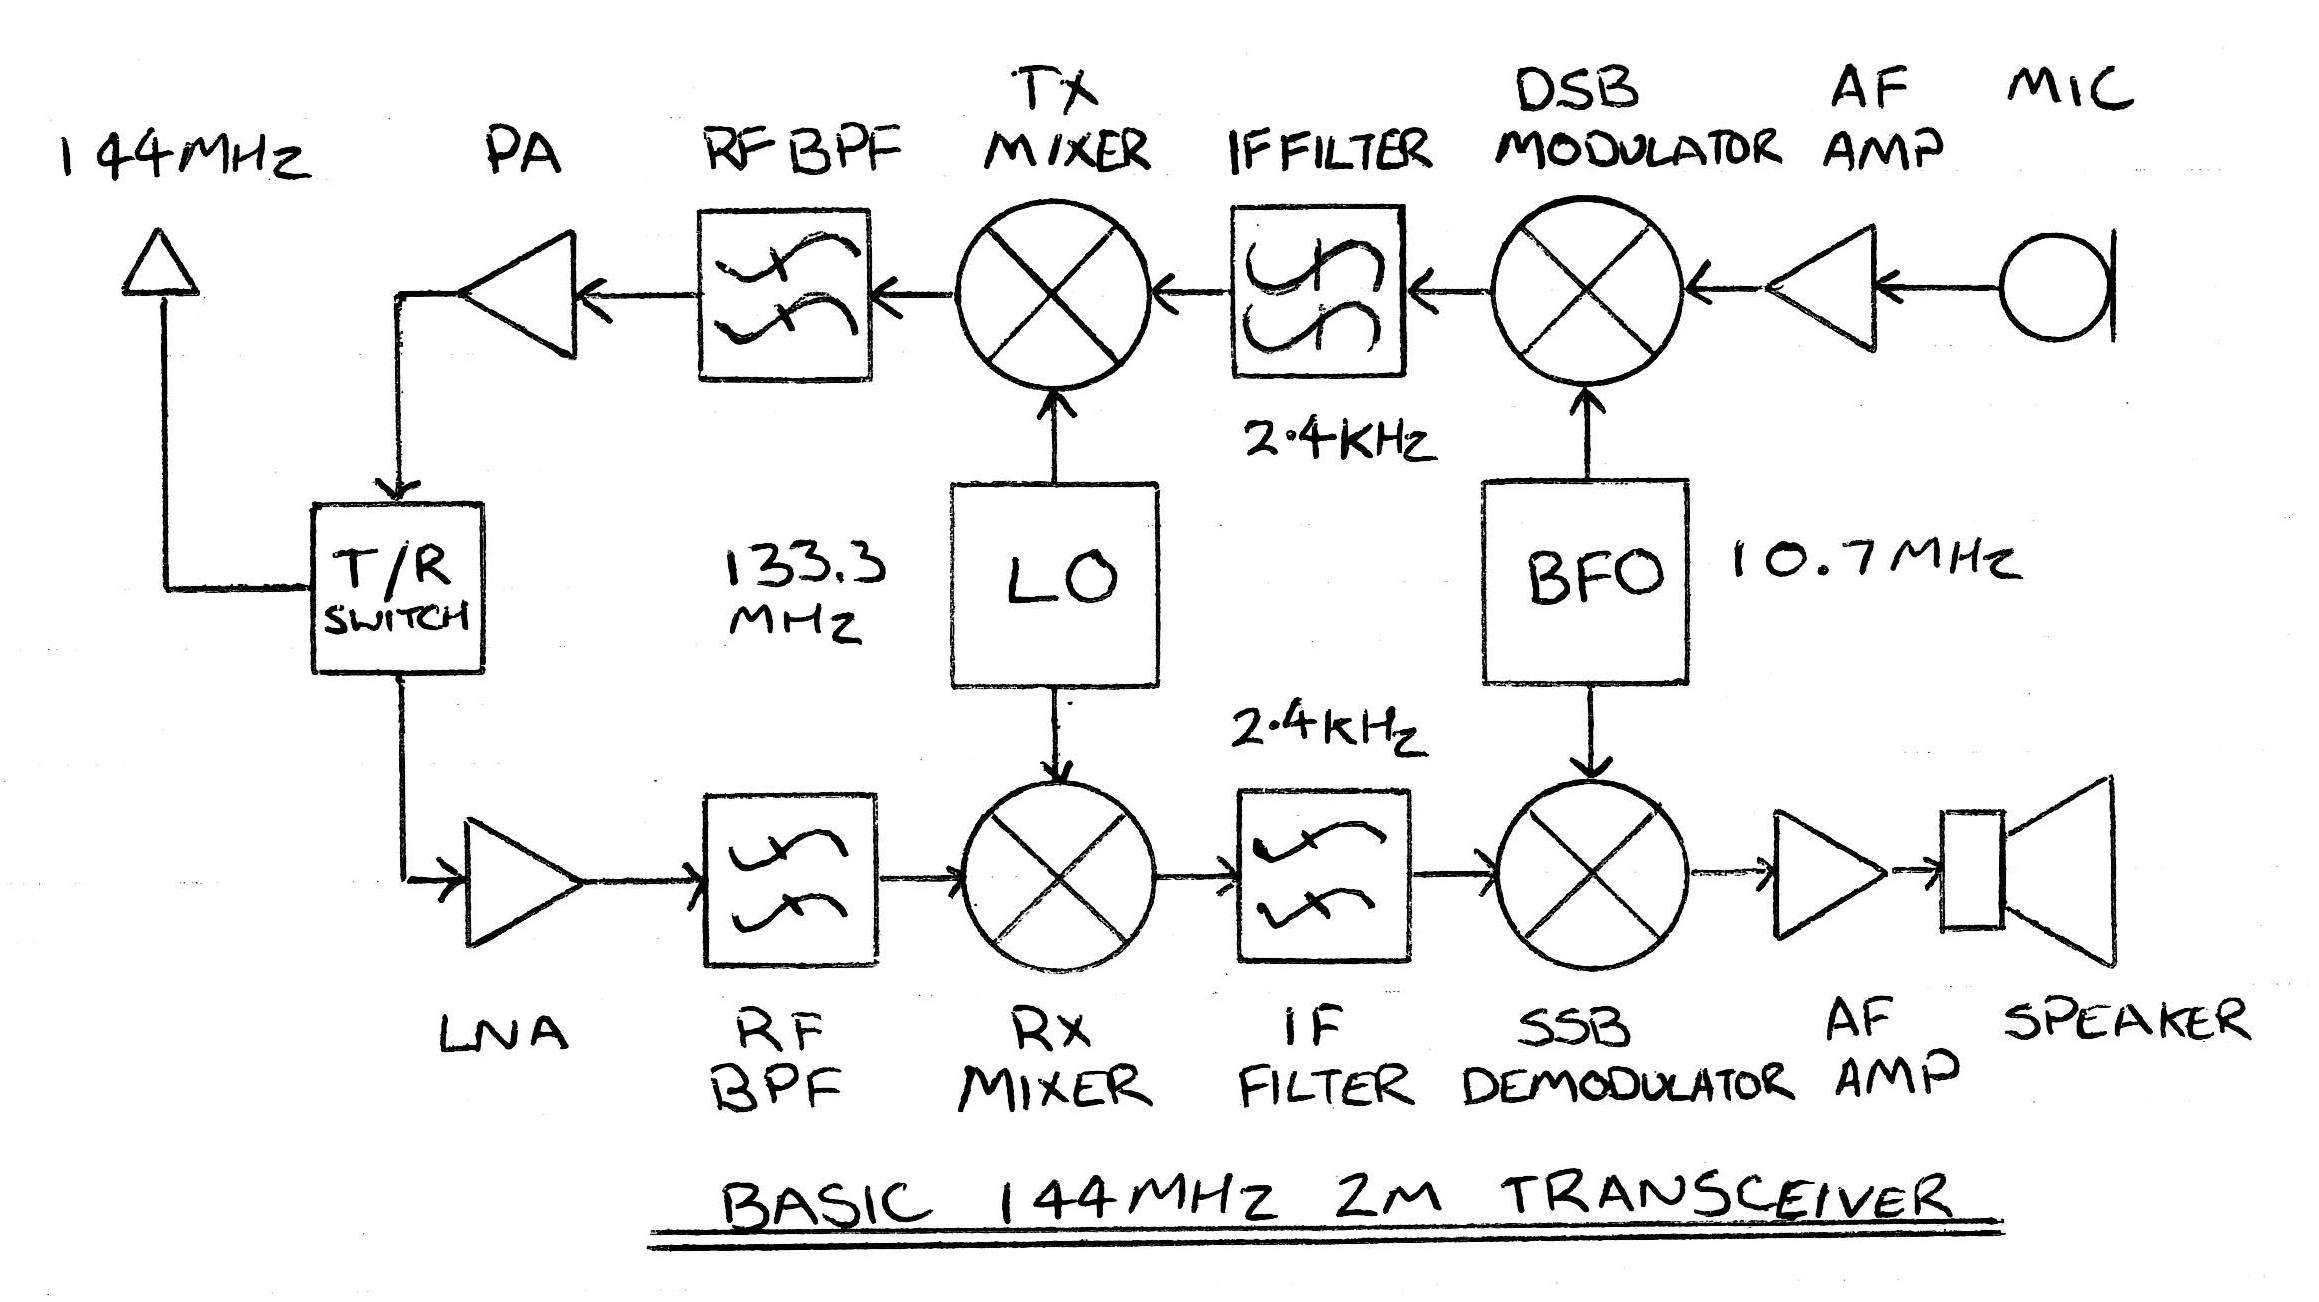 Homebrew Hunter Radio Group Vk2awx 144mhz Power Amplifier Circuit Basic 2m Transceiver